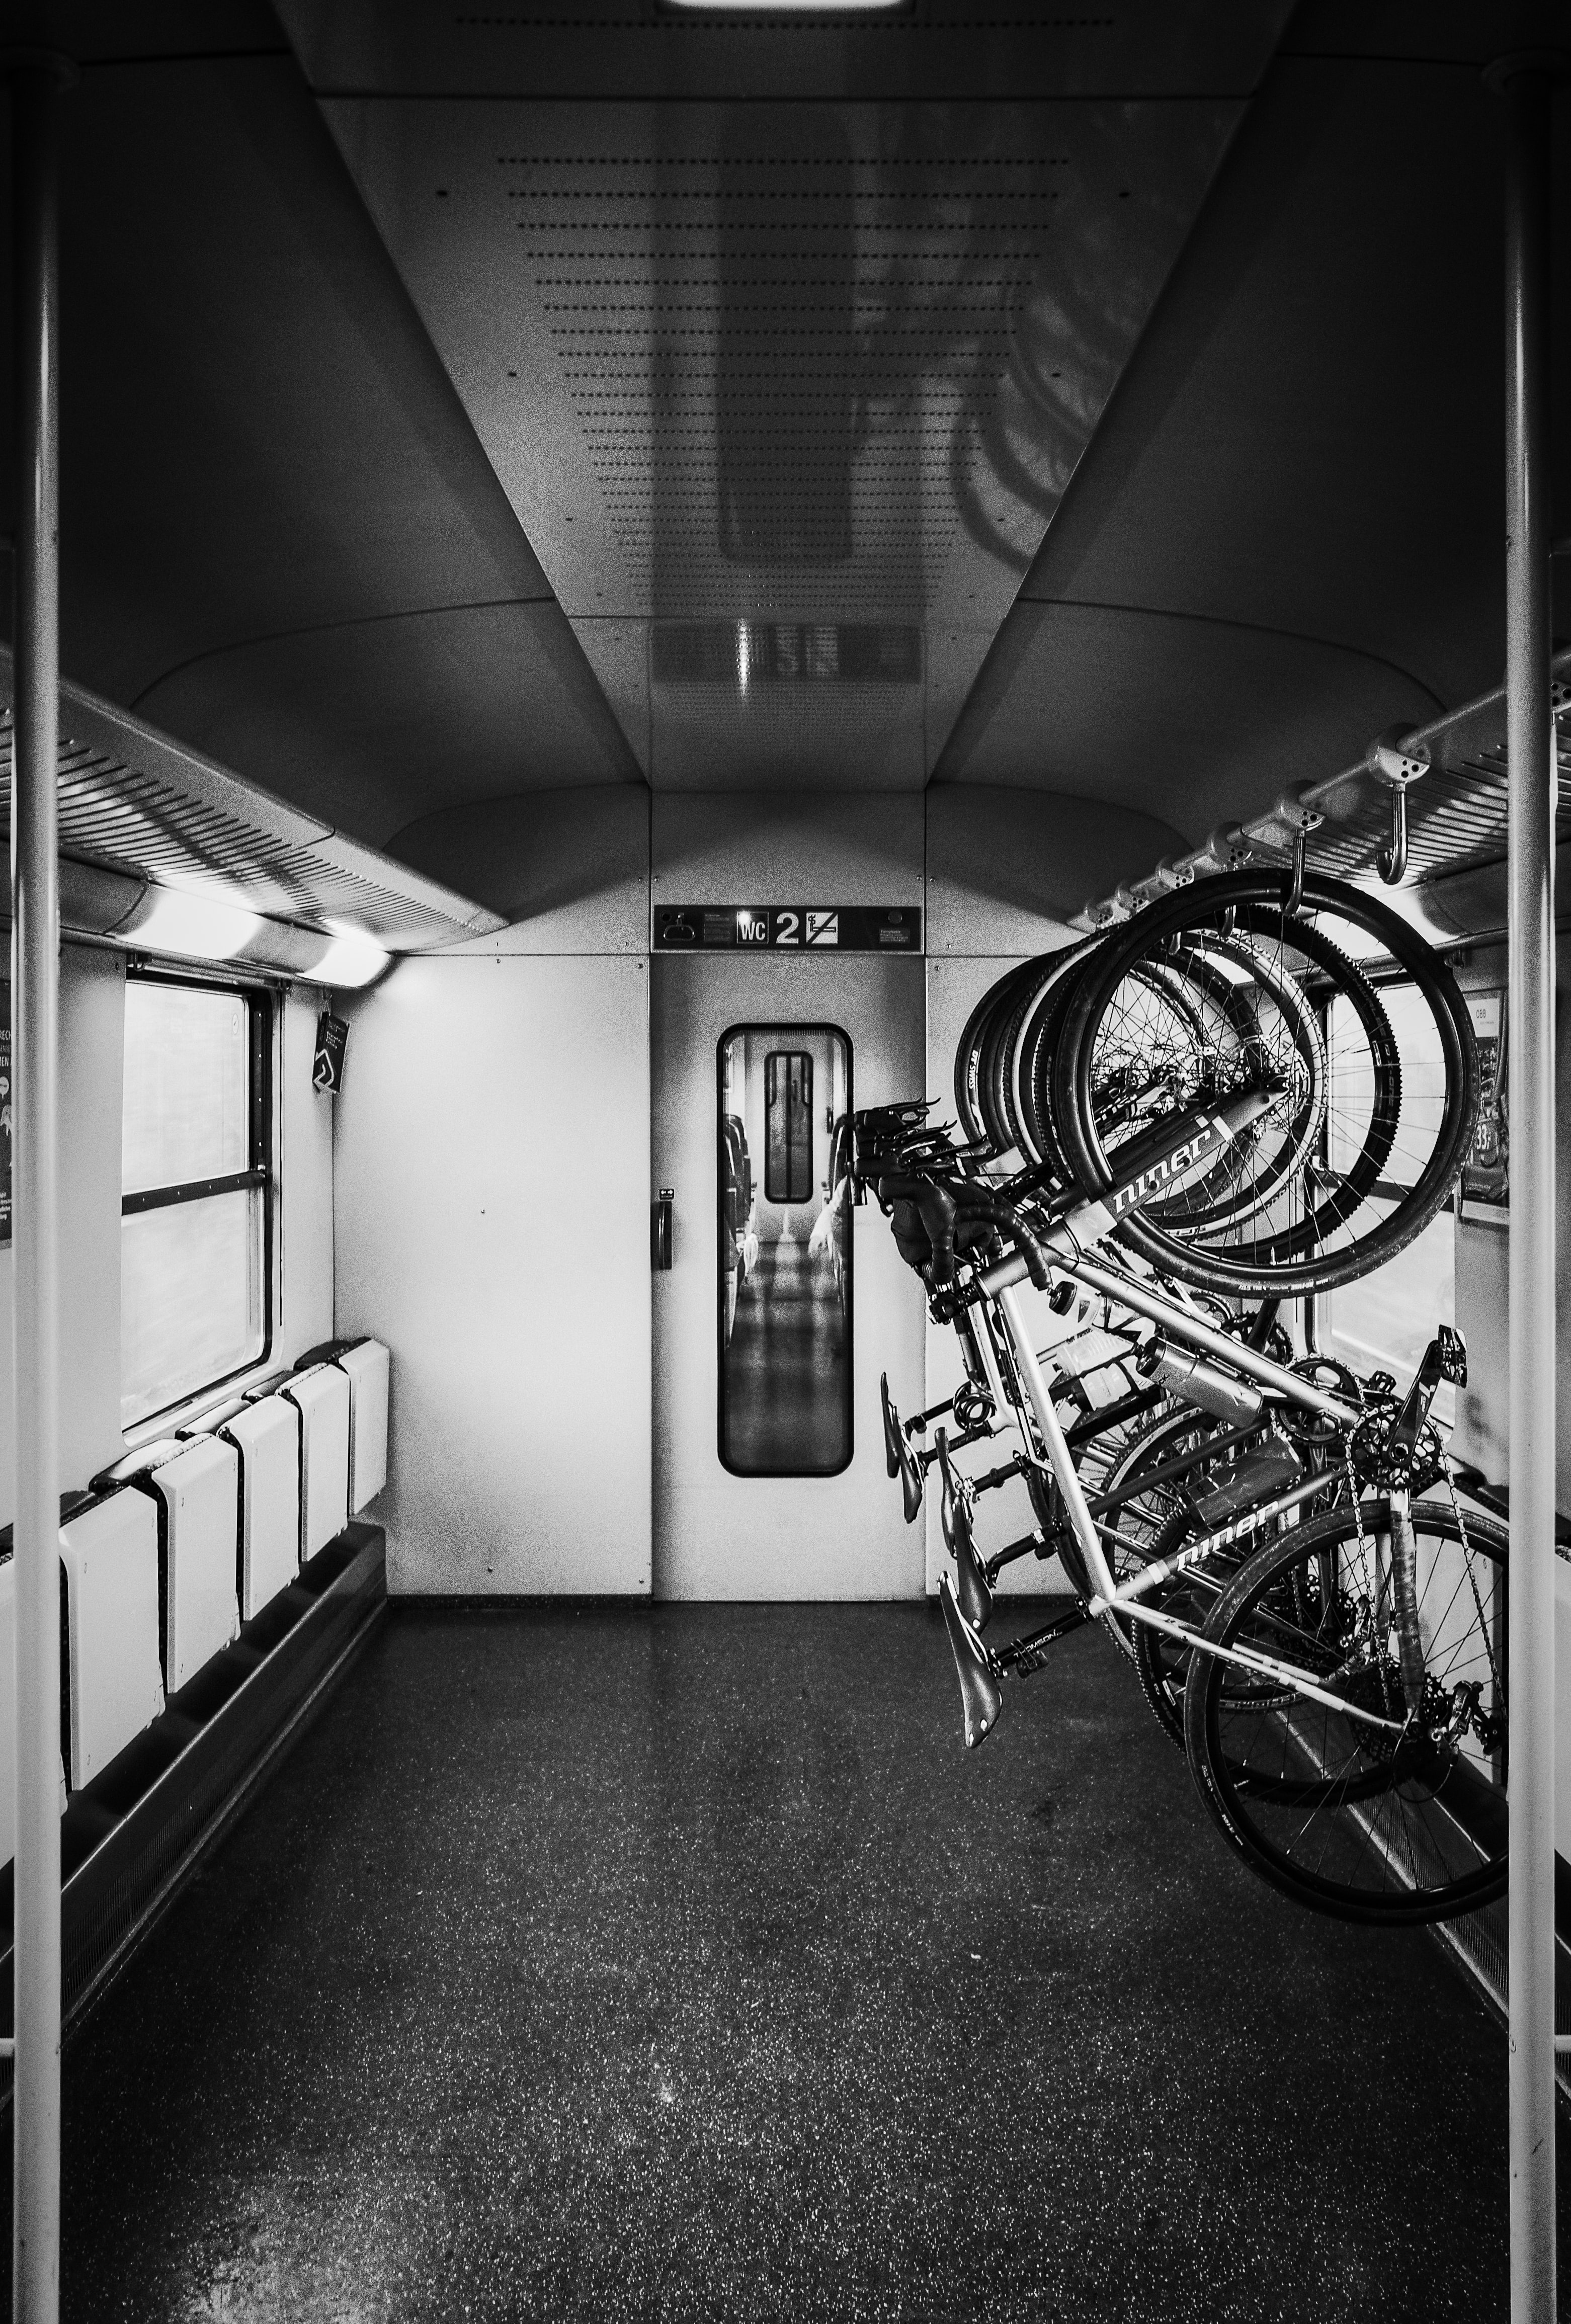 grayscale photo of bikes on rack